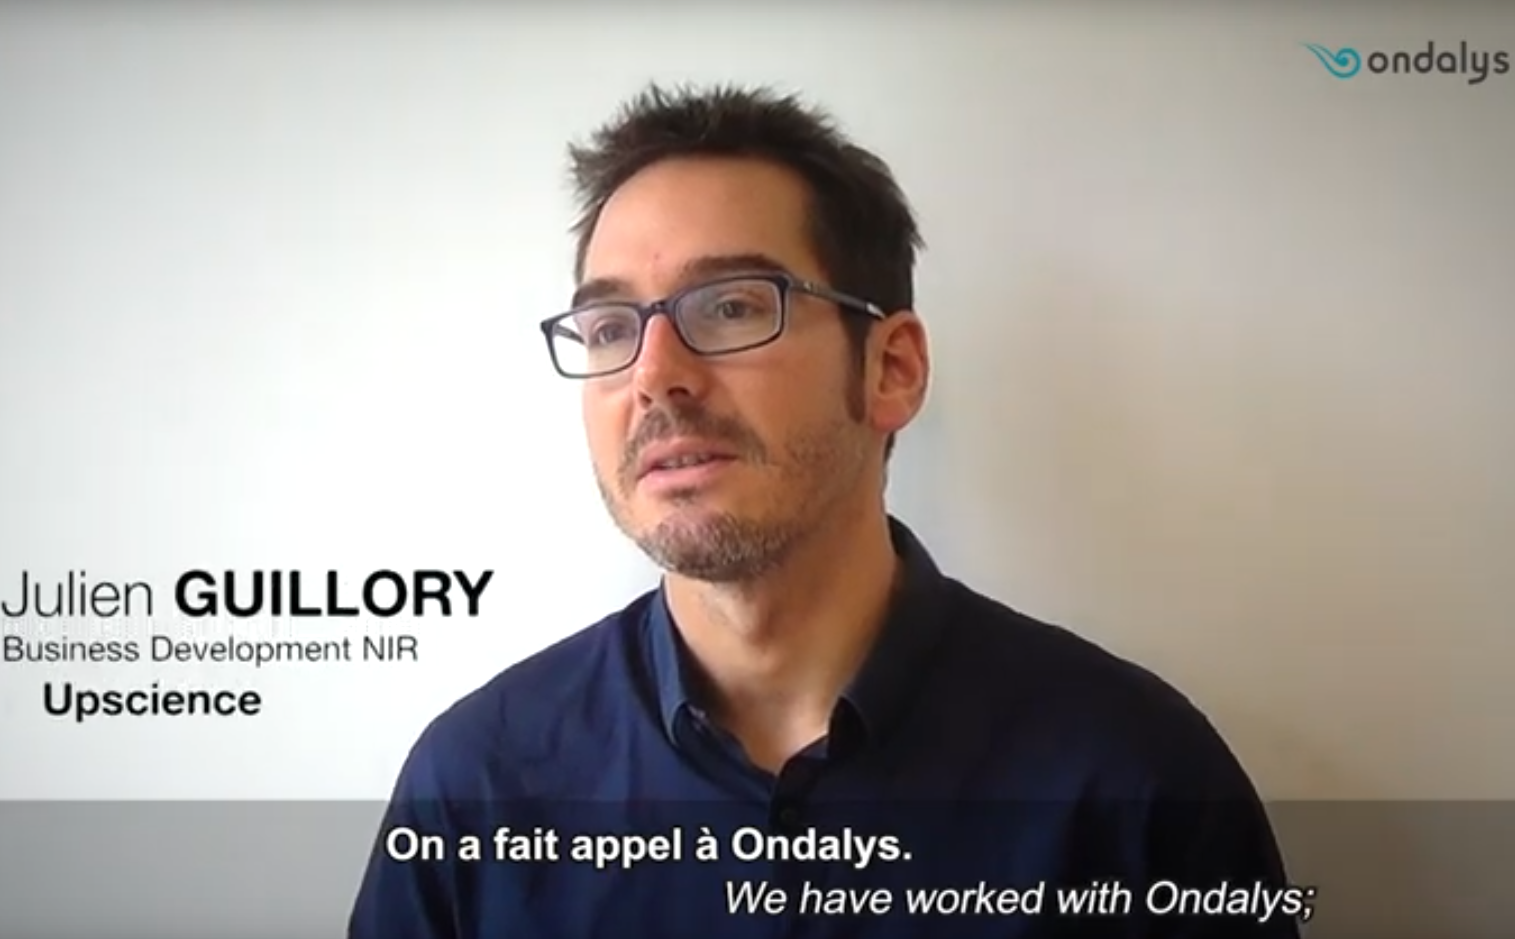 Julien Guillory Upscience